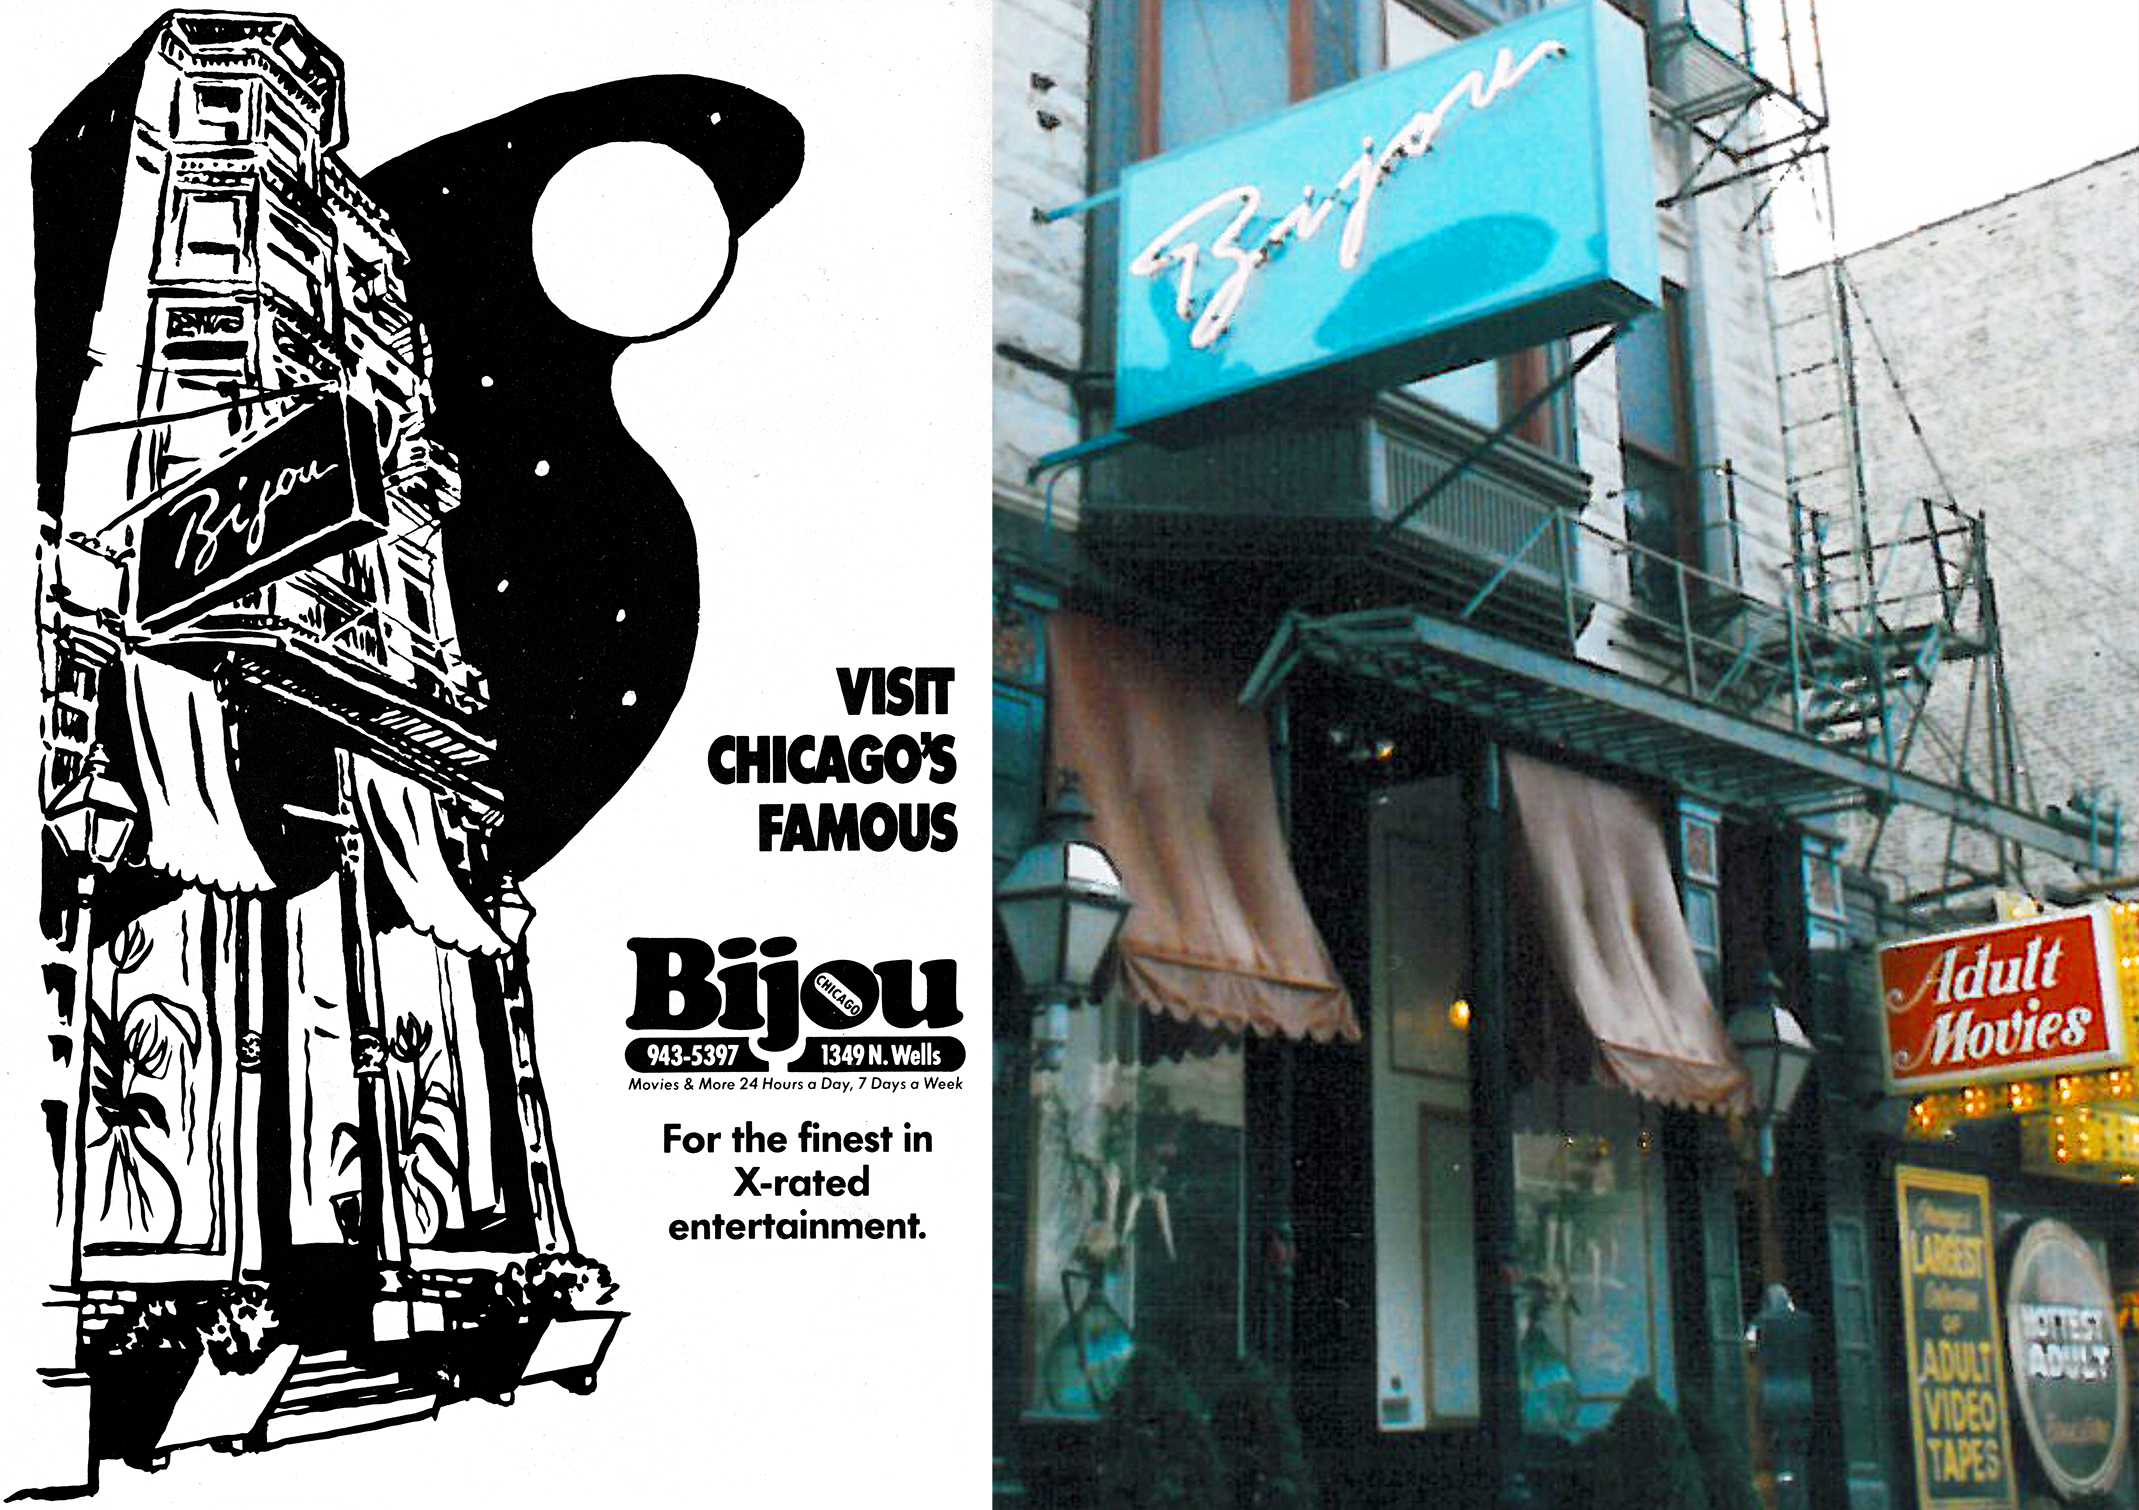 Vintage Bijou Theater ad and exterior photo